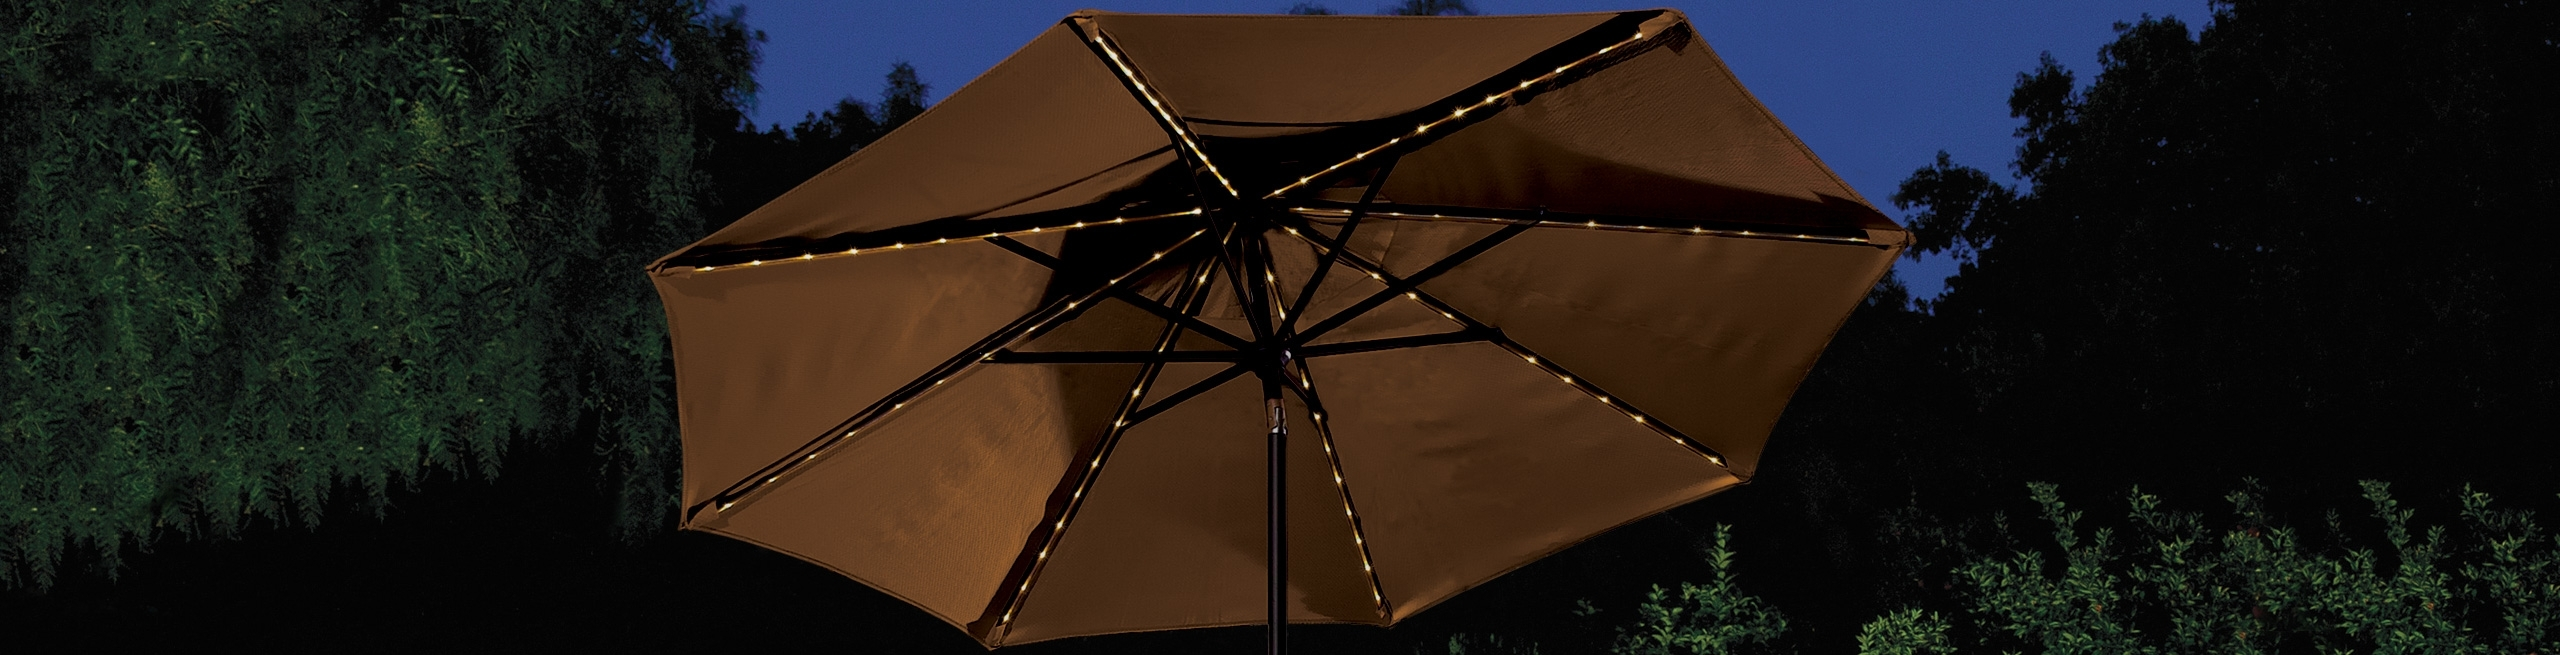 Recent Treasure Garden: Treasure Garden Umbrellas (View 14 of 20)